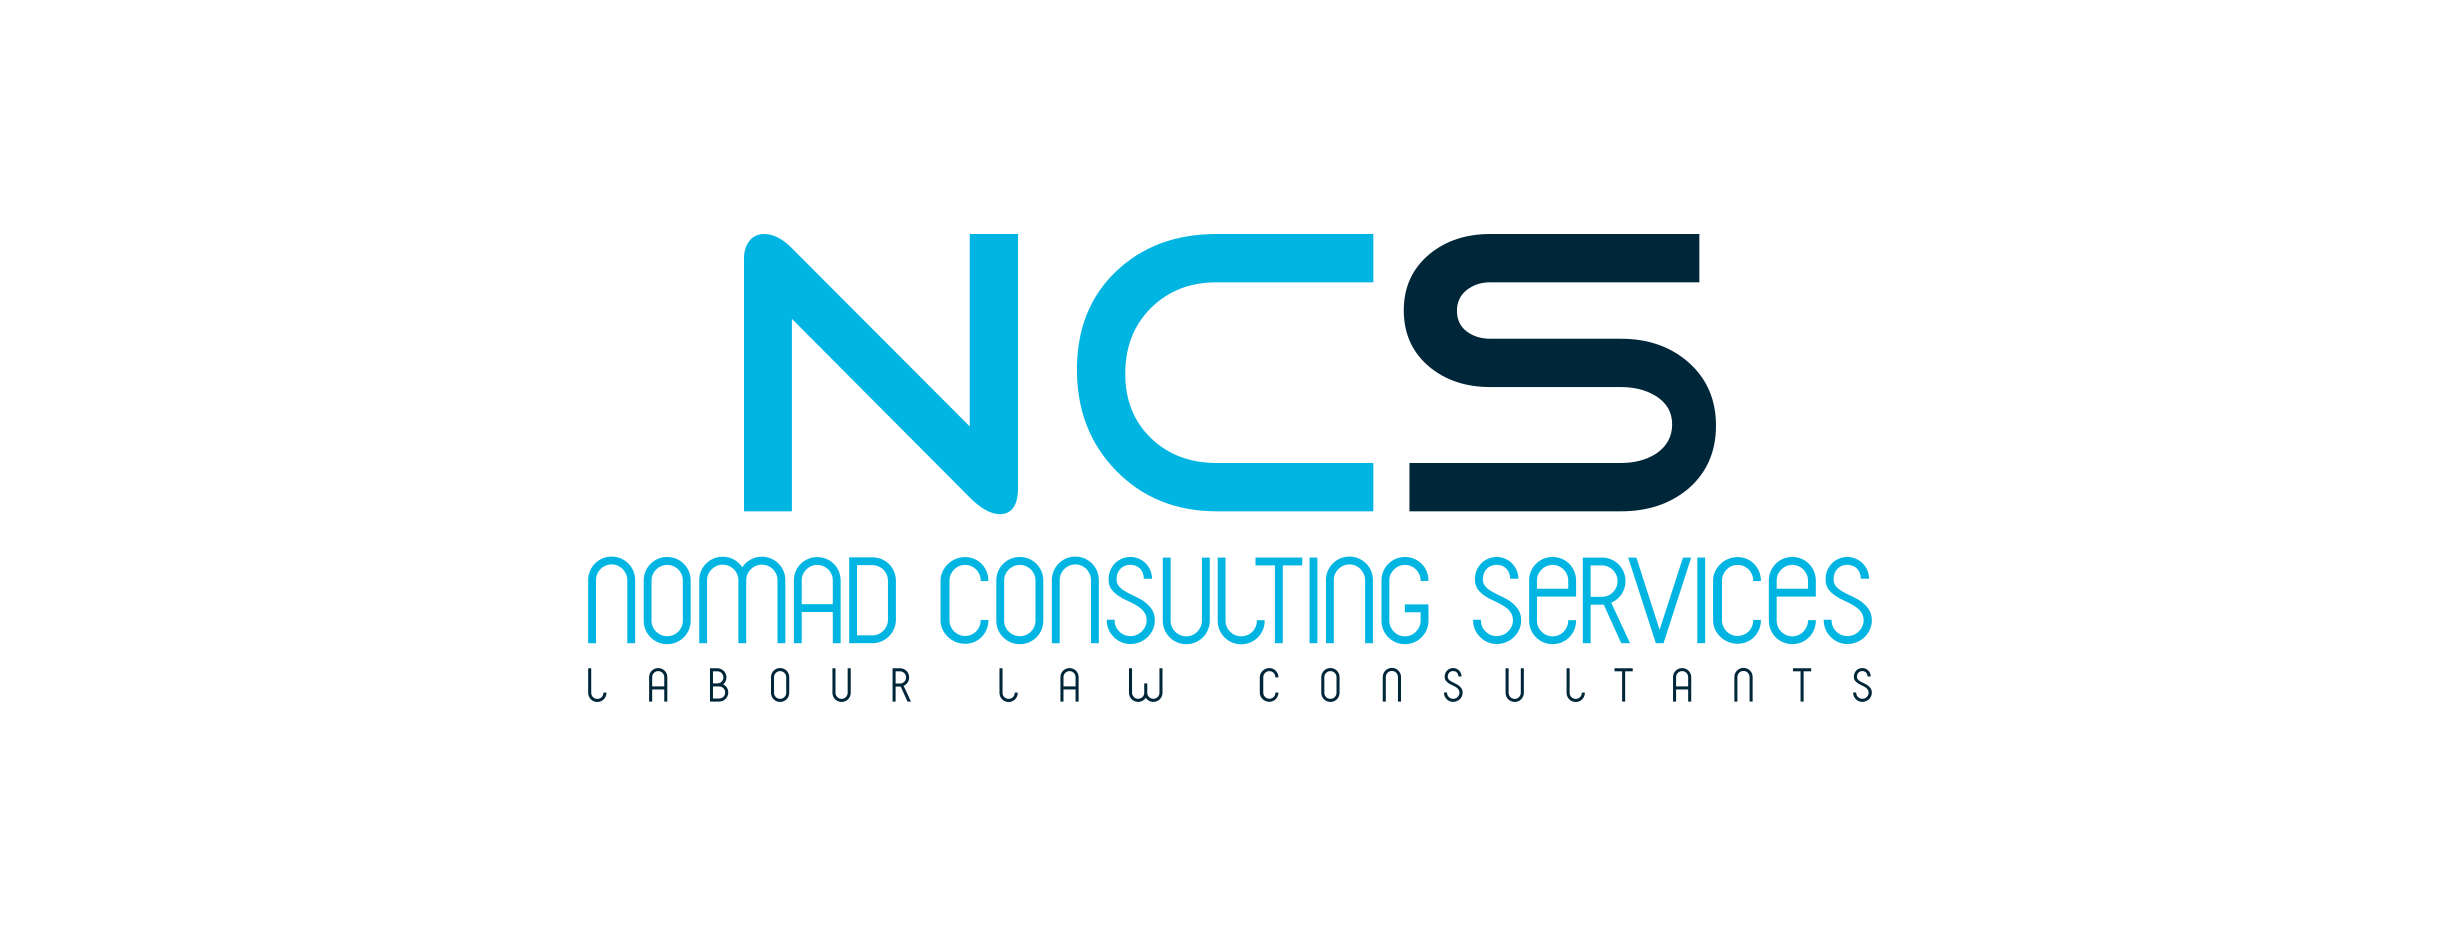 NOMAD CONSULTING SERVICES